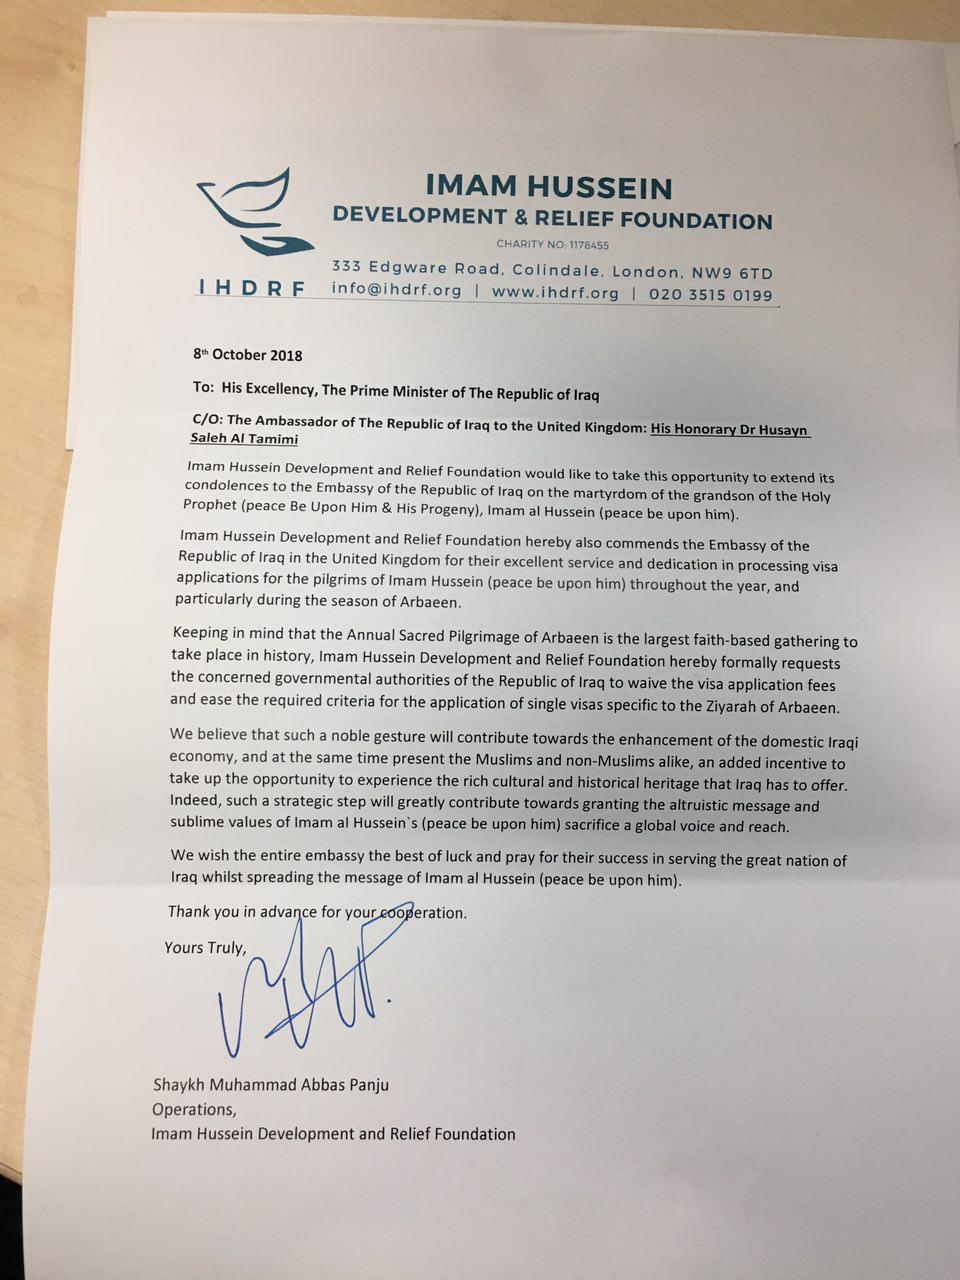 Photo of Imam Hussein Foundation requests Iraqi authorities to waive visa fees for Arbaeen pilgrims